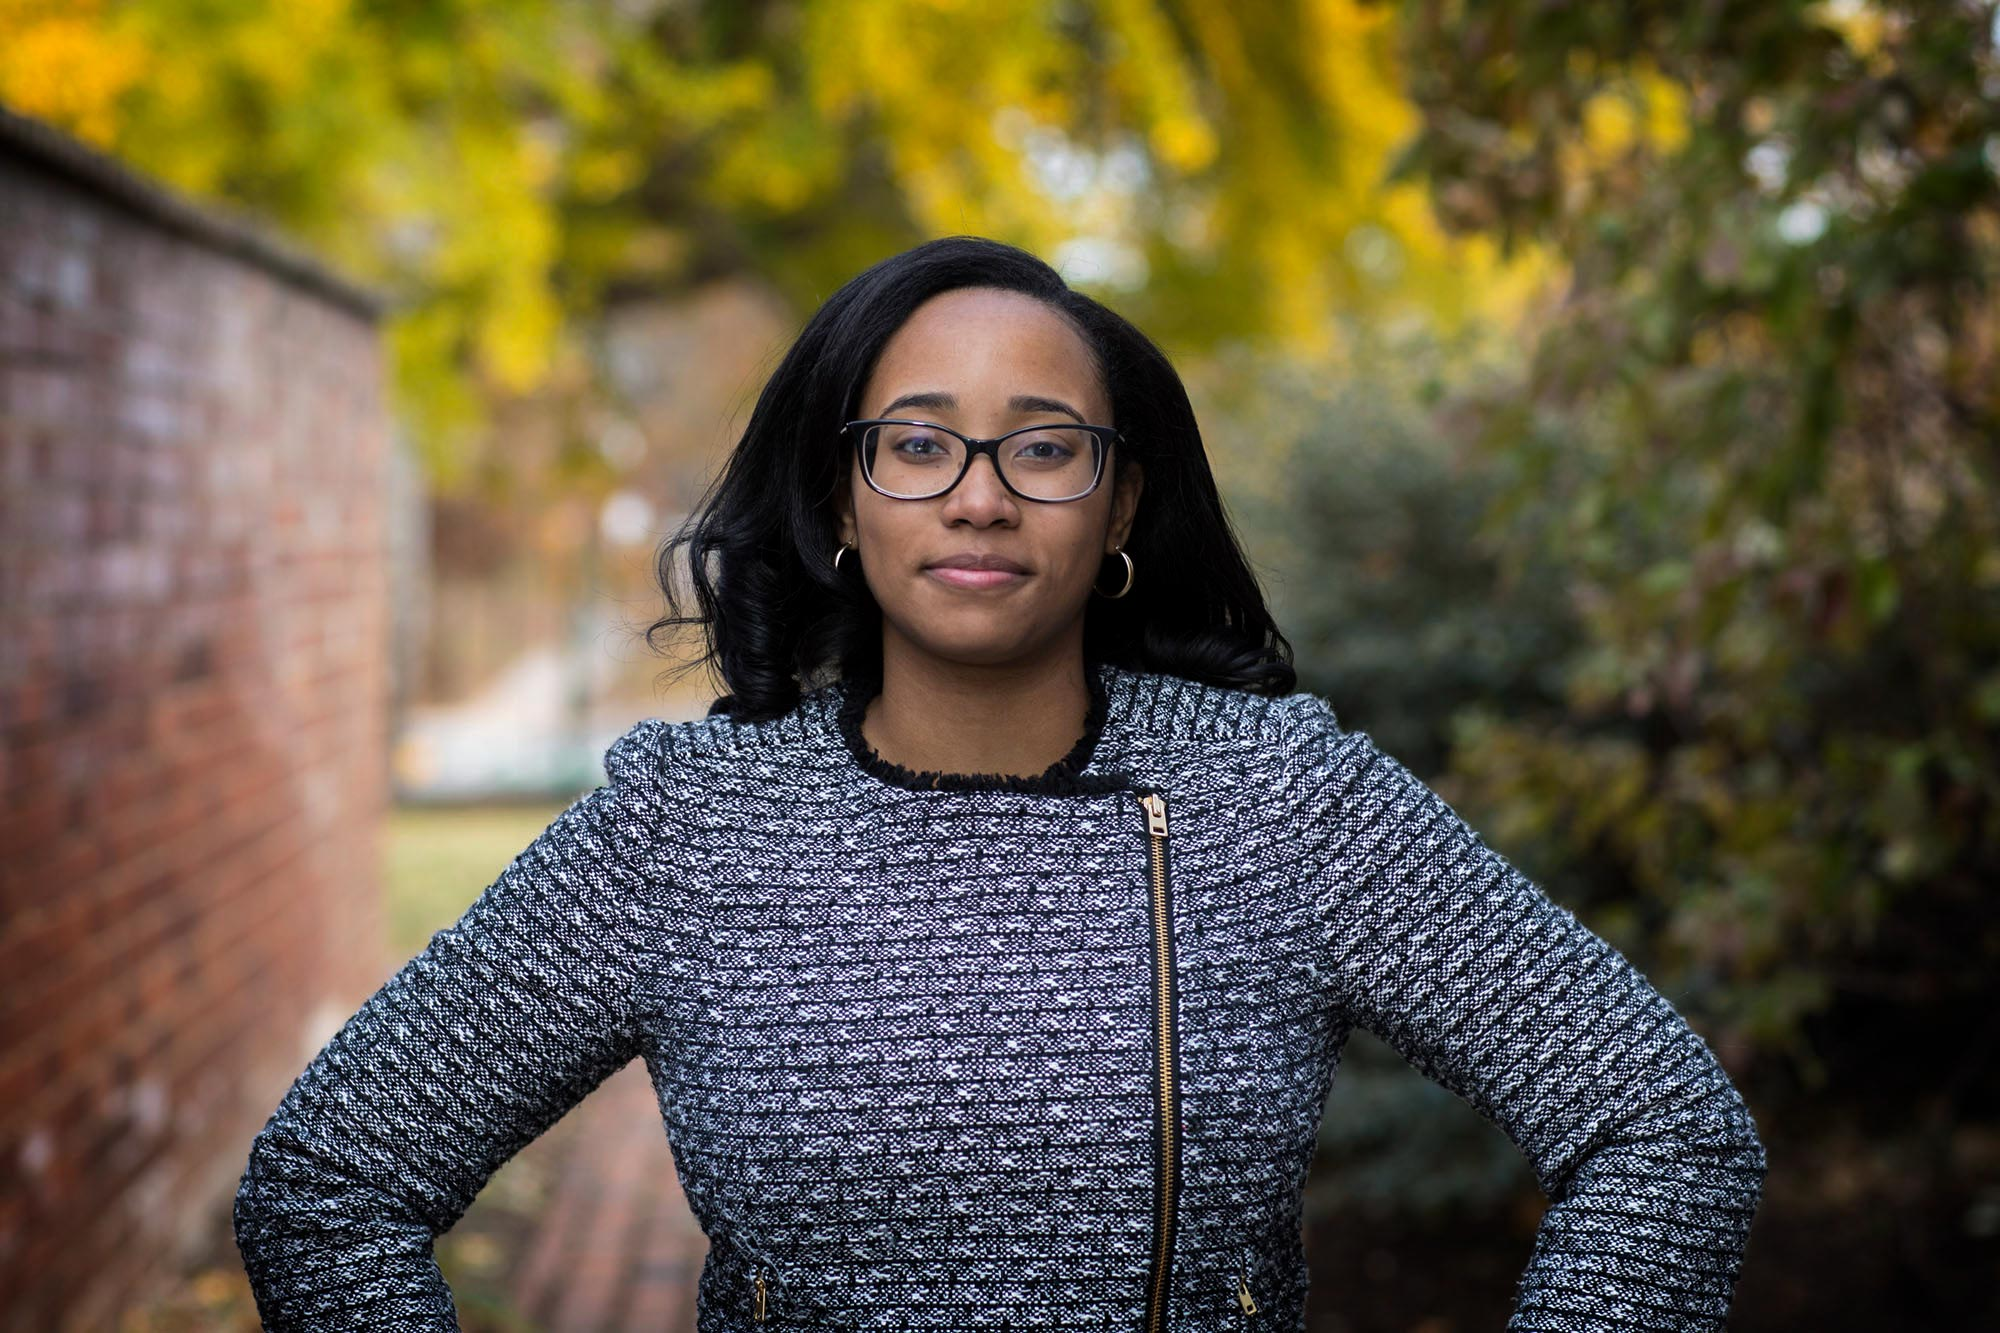 Rhodes Scholar Aryn Frazier, who graduated from UVA in 2017, will continue her education at Stanford University's Law School.